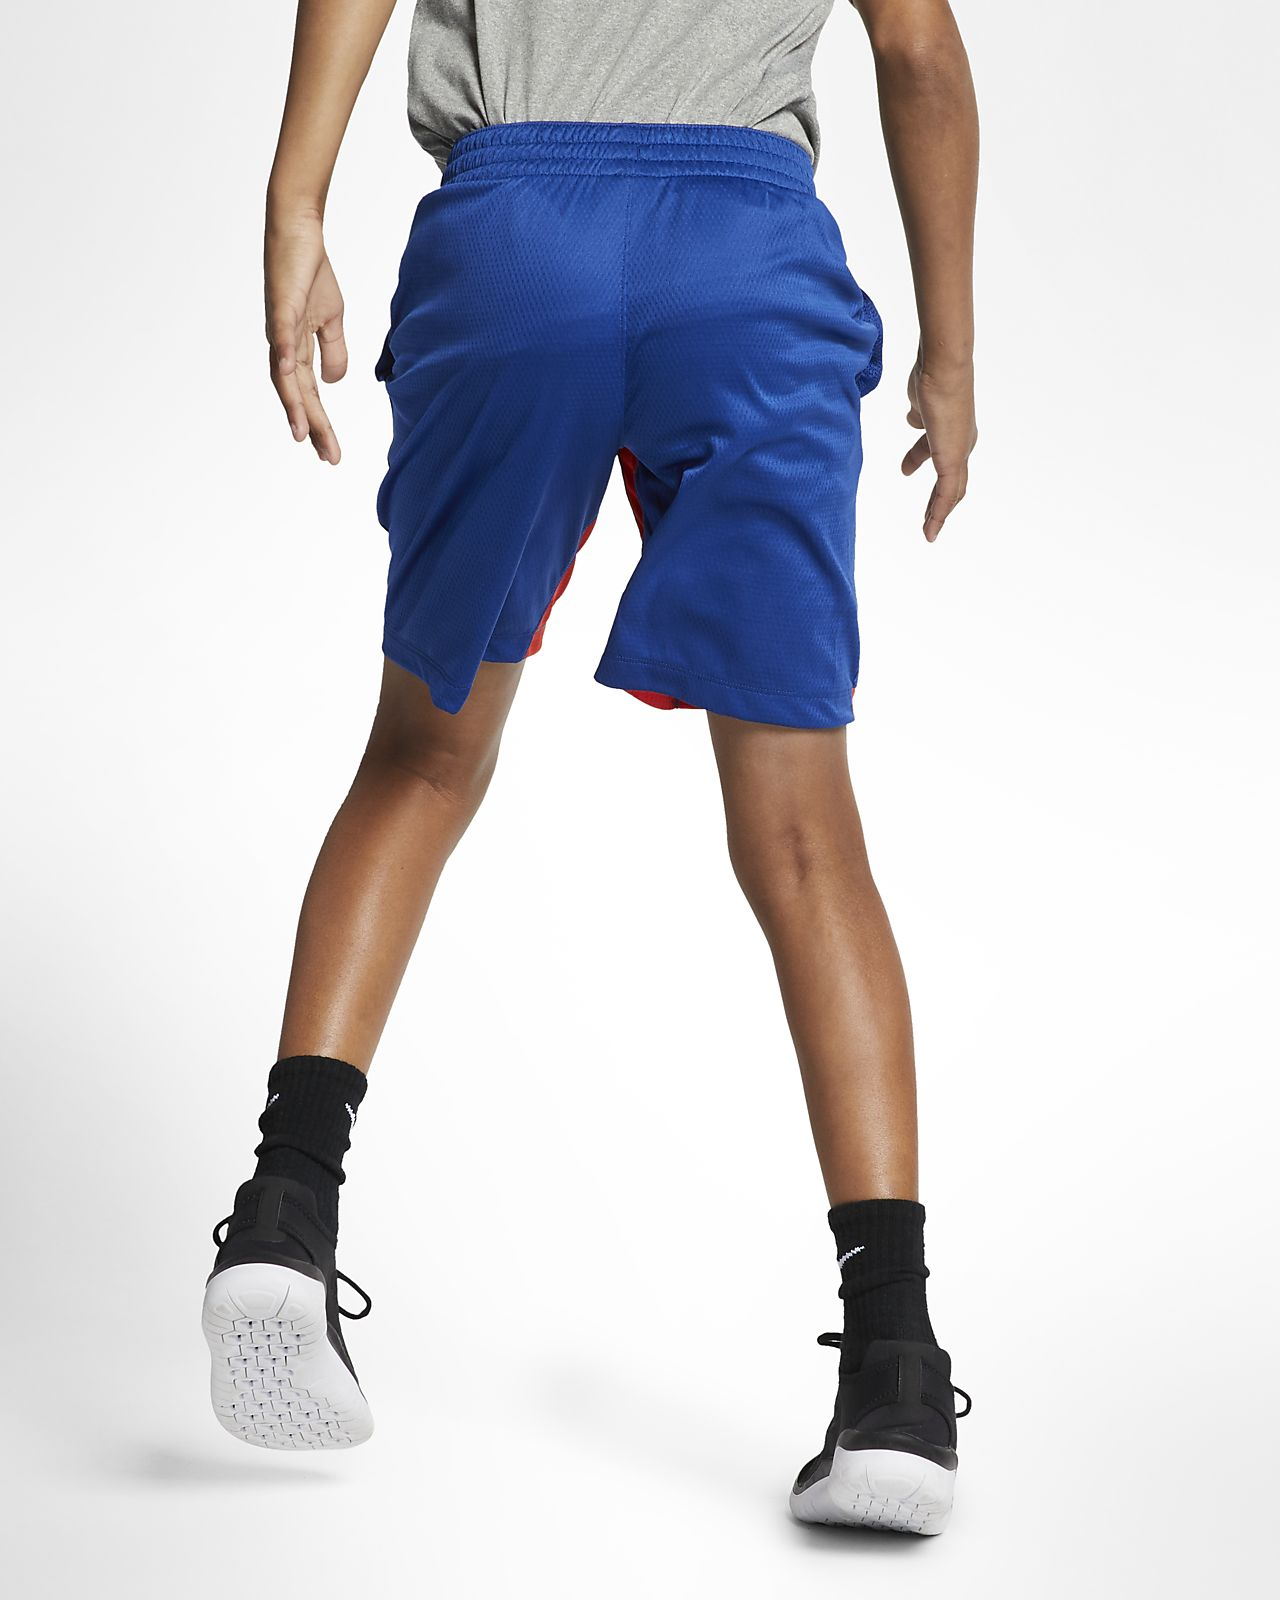 0dd0c51eec Nike Dri-FIT Trophy Big Kids' (Boys') Training Shorts. Nike.com